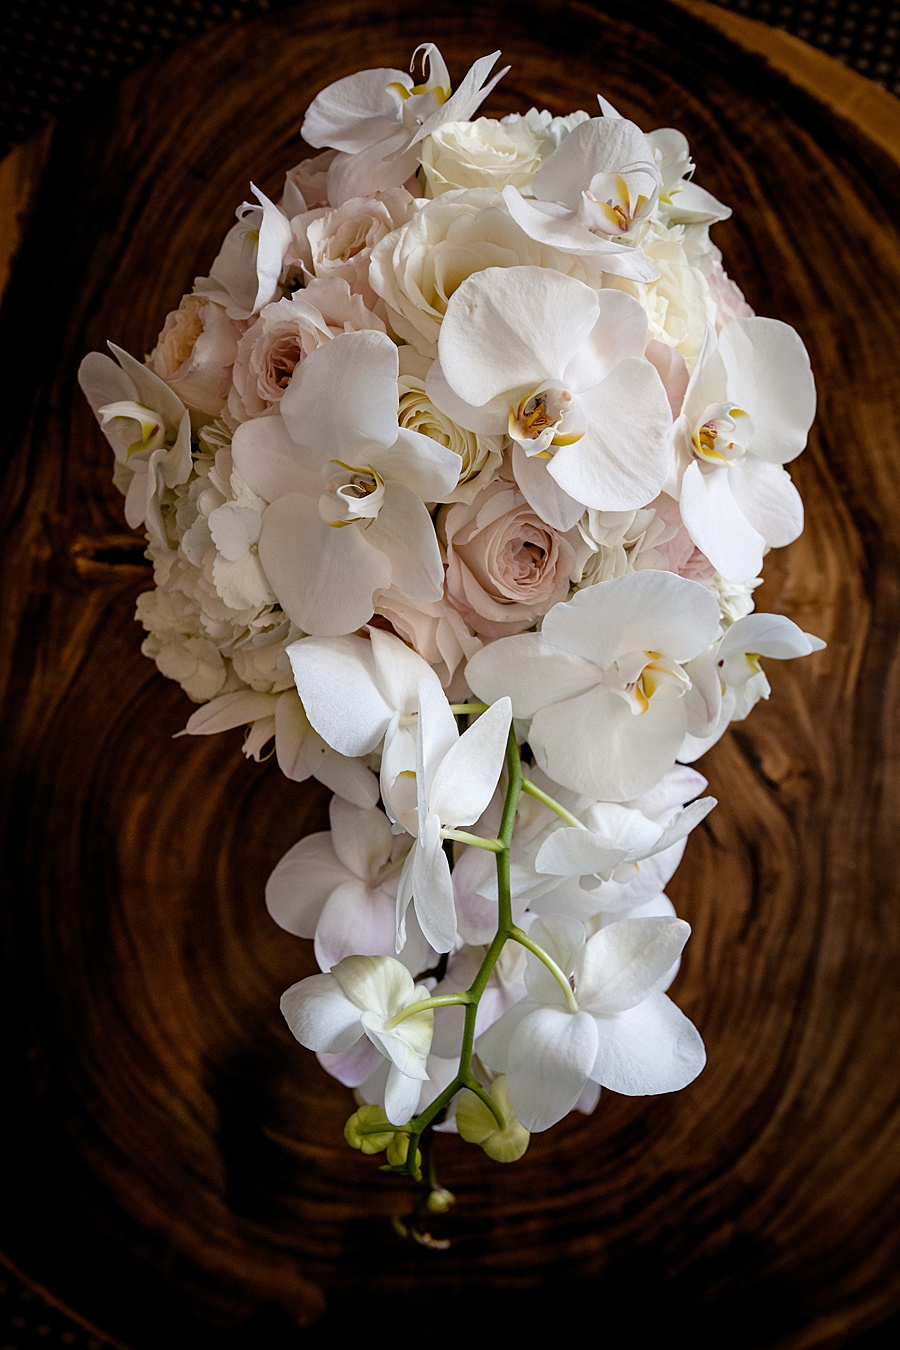 Bridal Wedding Bouquet with White Phalaenopsis Orchids